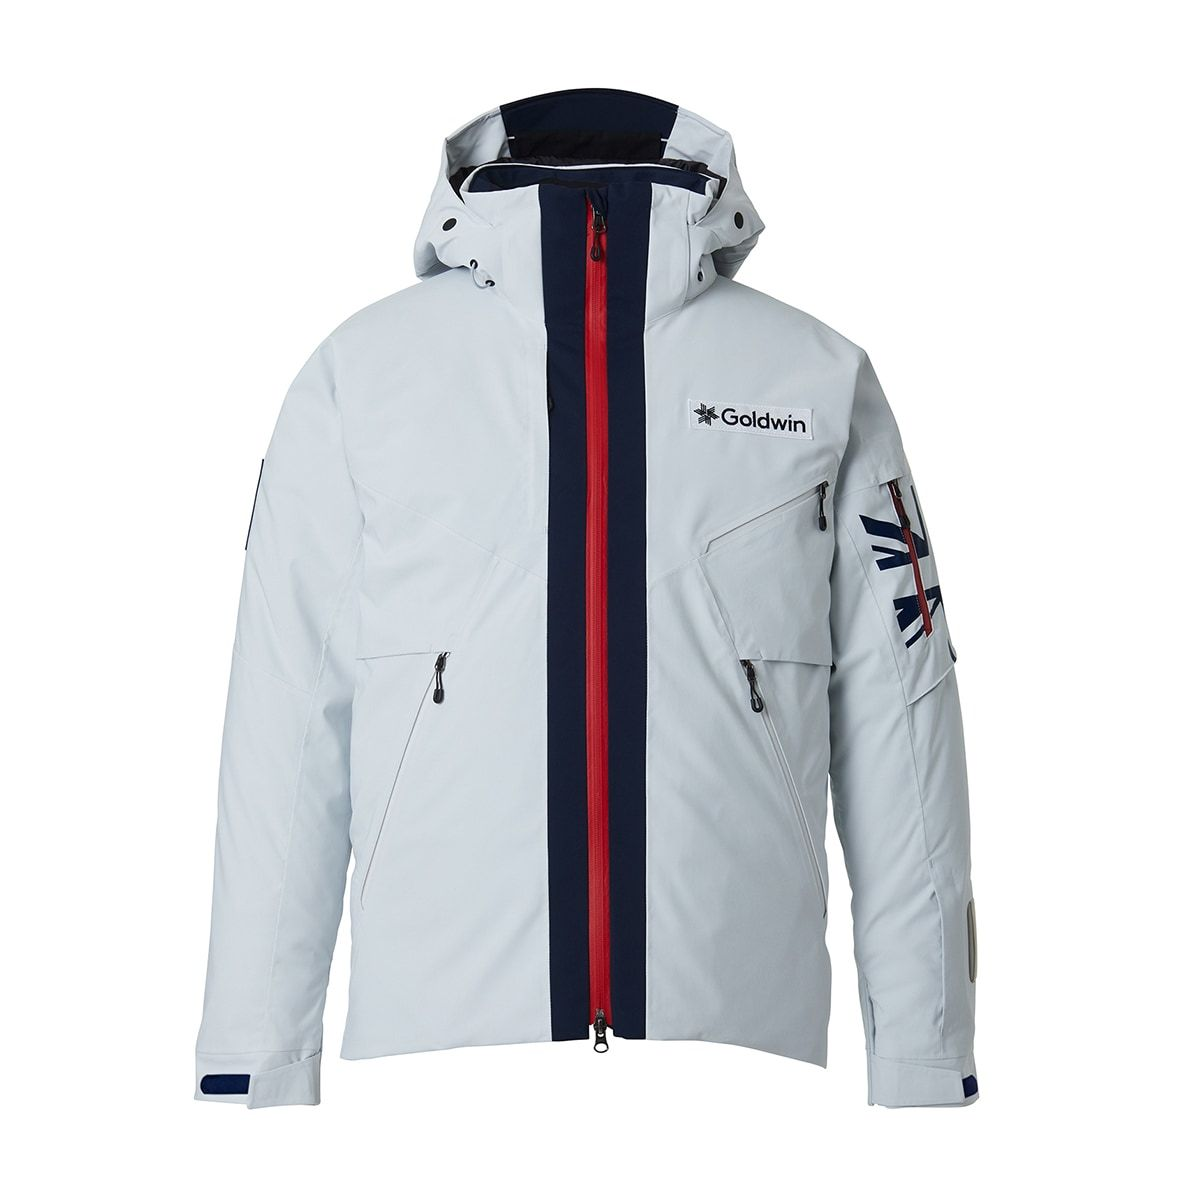 GREAT BRITAIN TEAM REPLICA JACKET